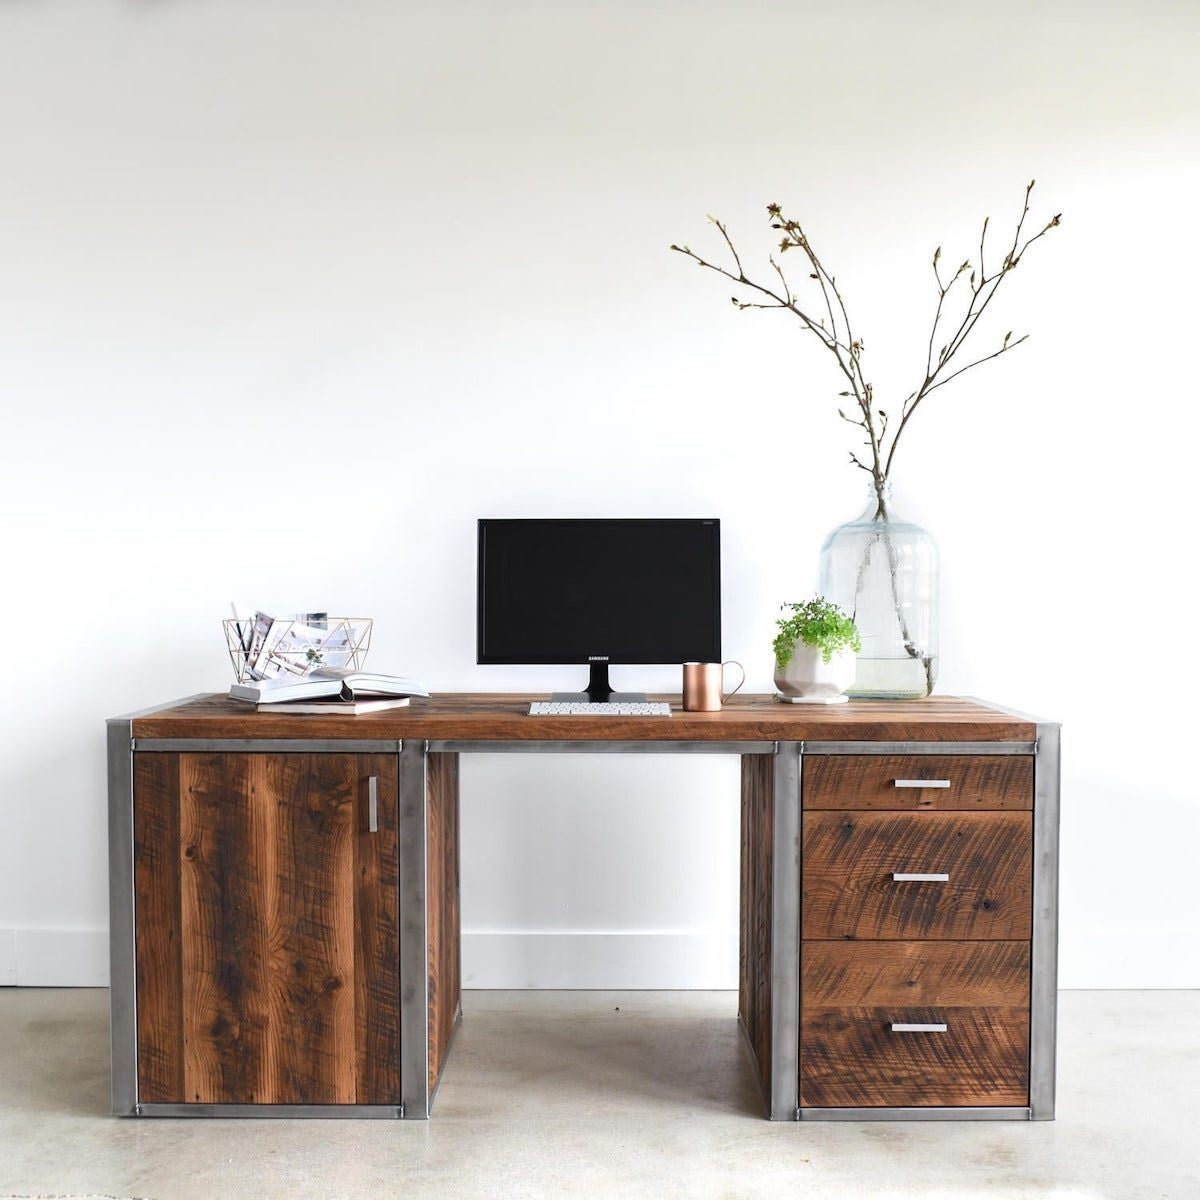 Reclaimed wood and steel desk from What WE Make